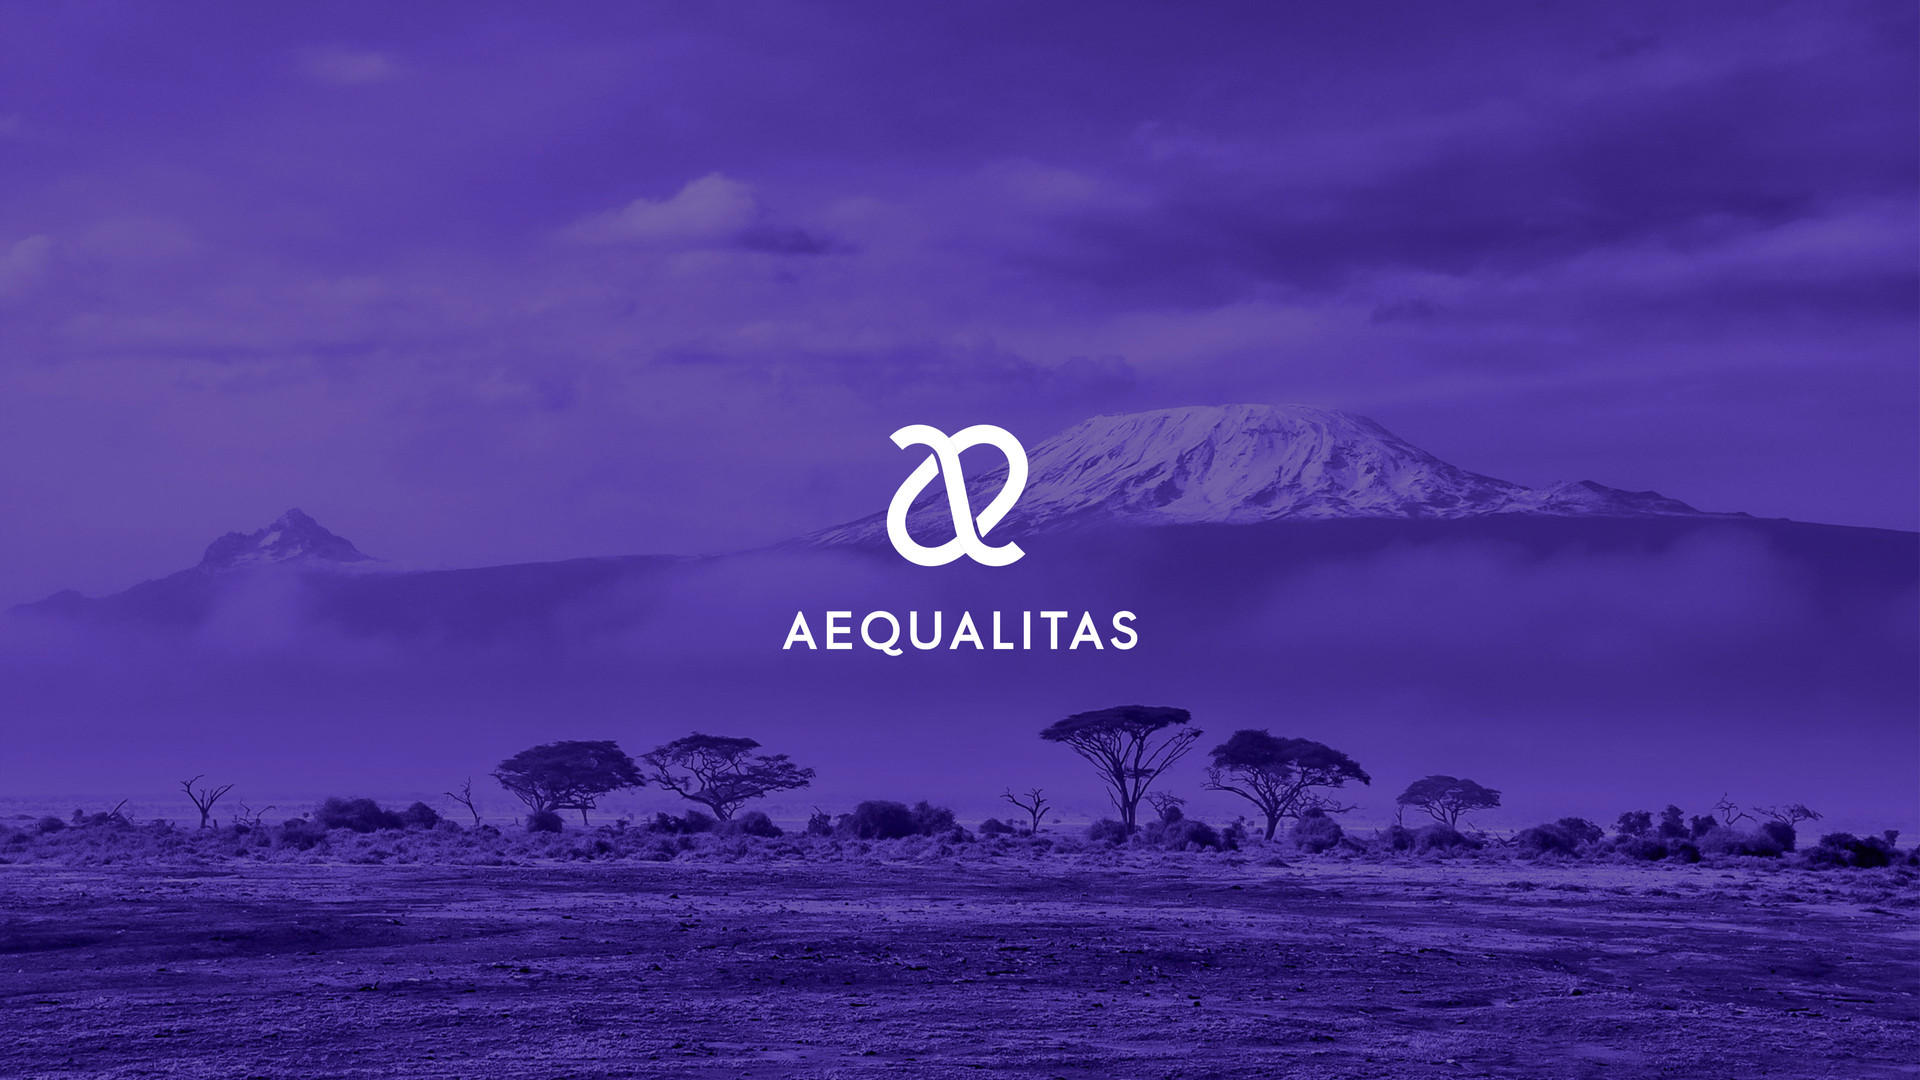 Aequalitas by The Design Laboratory